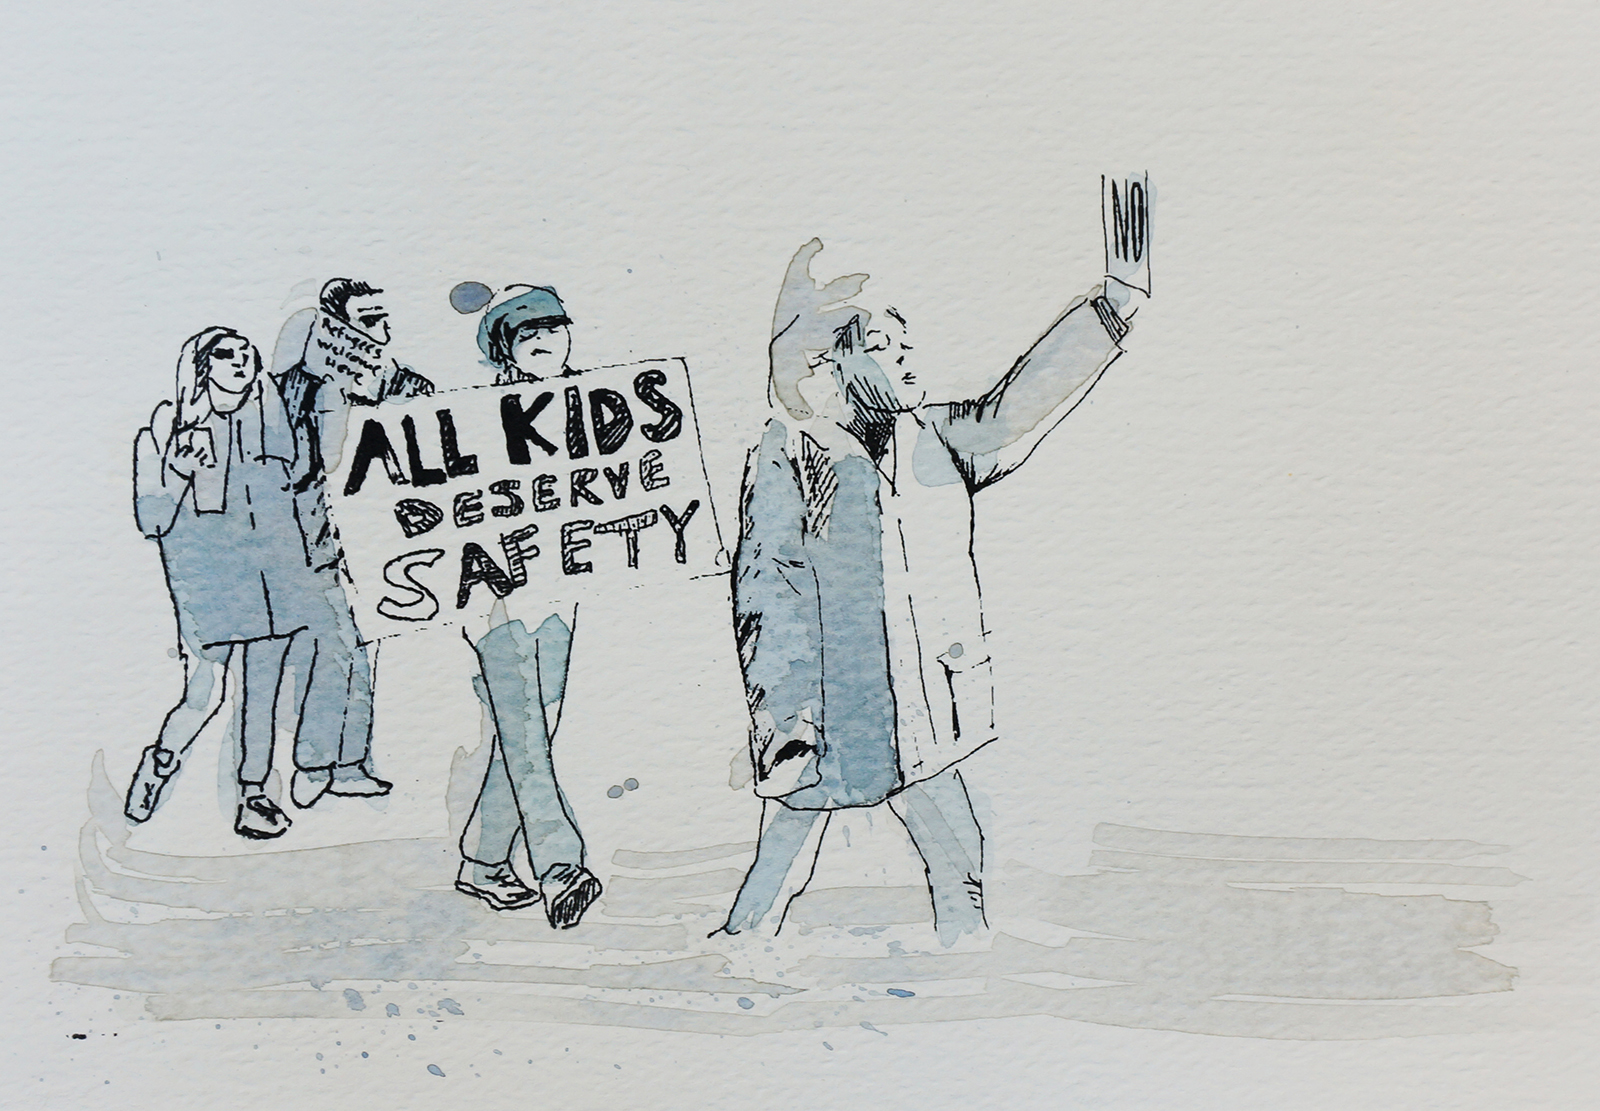 Ape_Bleakney_March Mixed Media - 'All Kids (8)', 6.5''x9.5'', Screen Print + Watercolor, 2018 copy.jpg